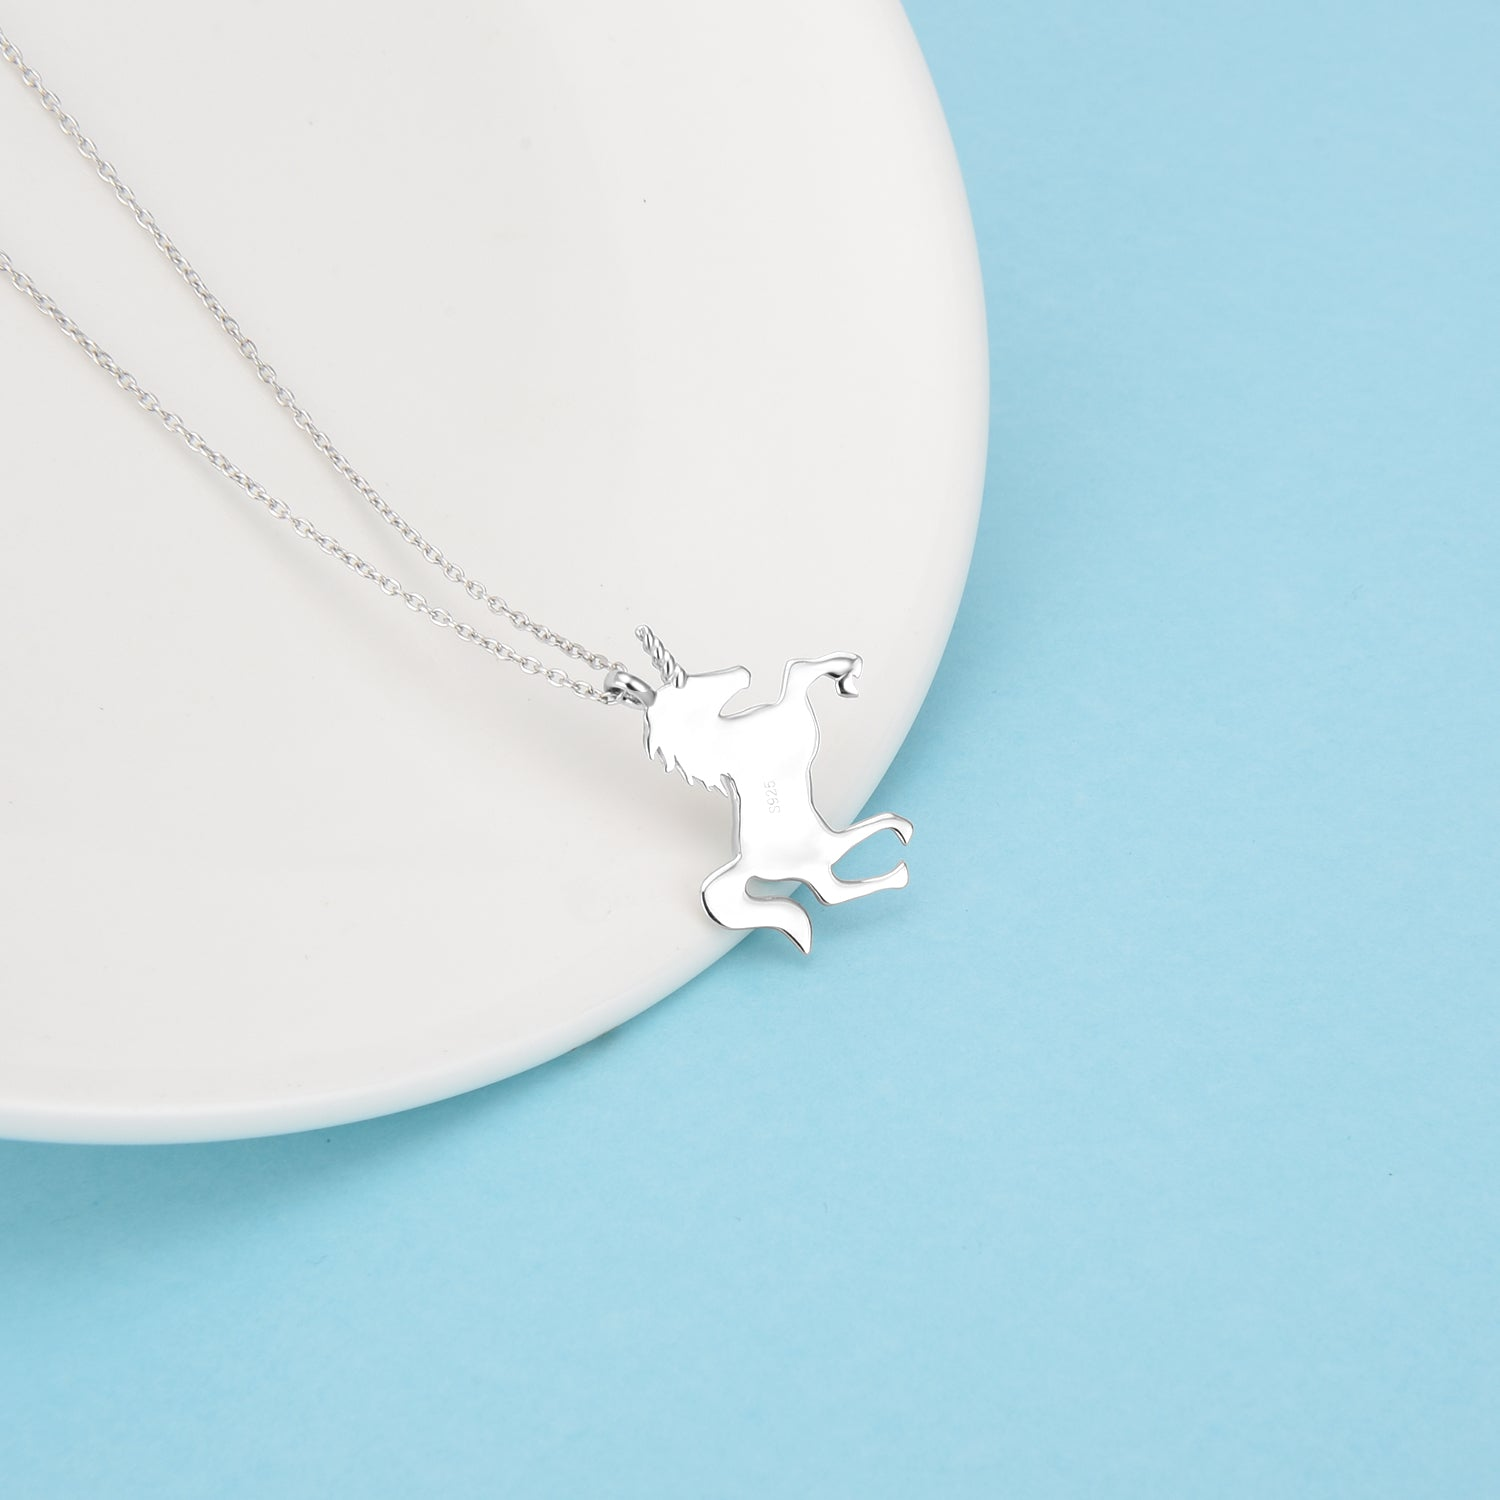 Good Quality New Fashion Animal Necklace Running Horse Necklace Manufacturer Wholesale